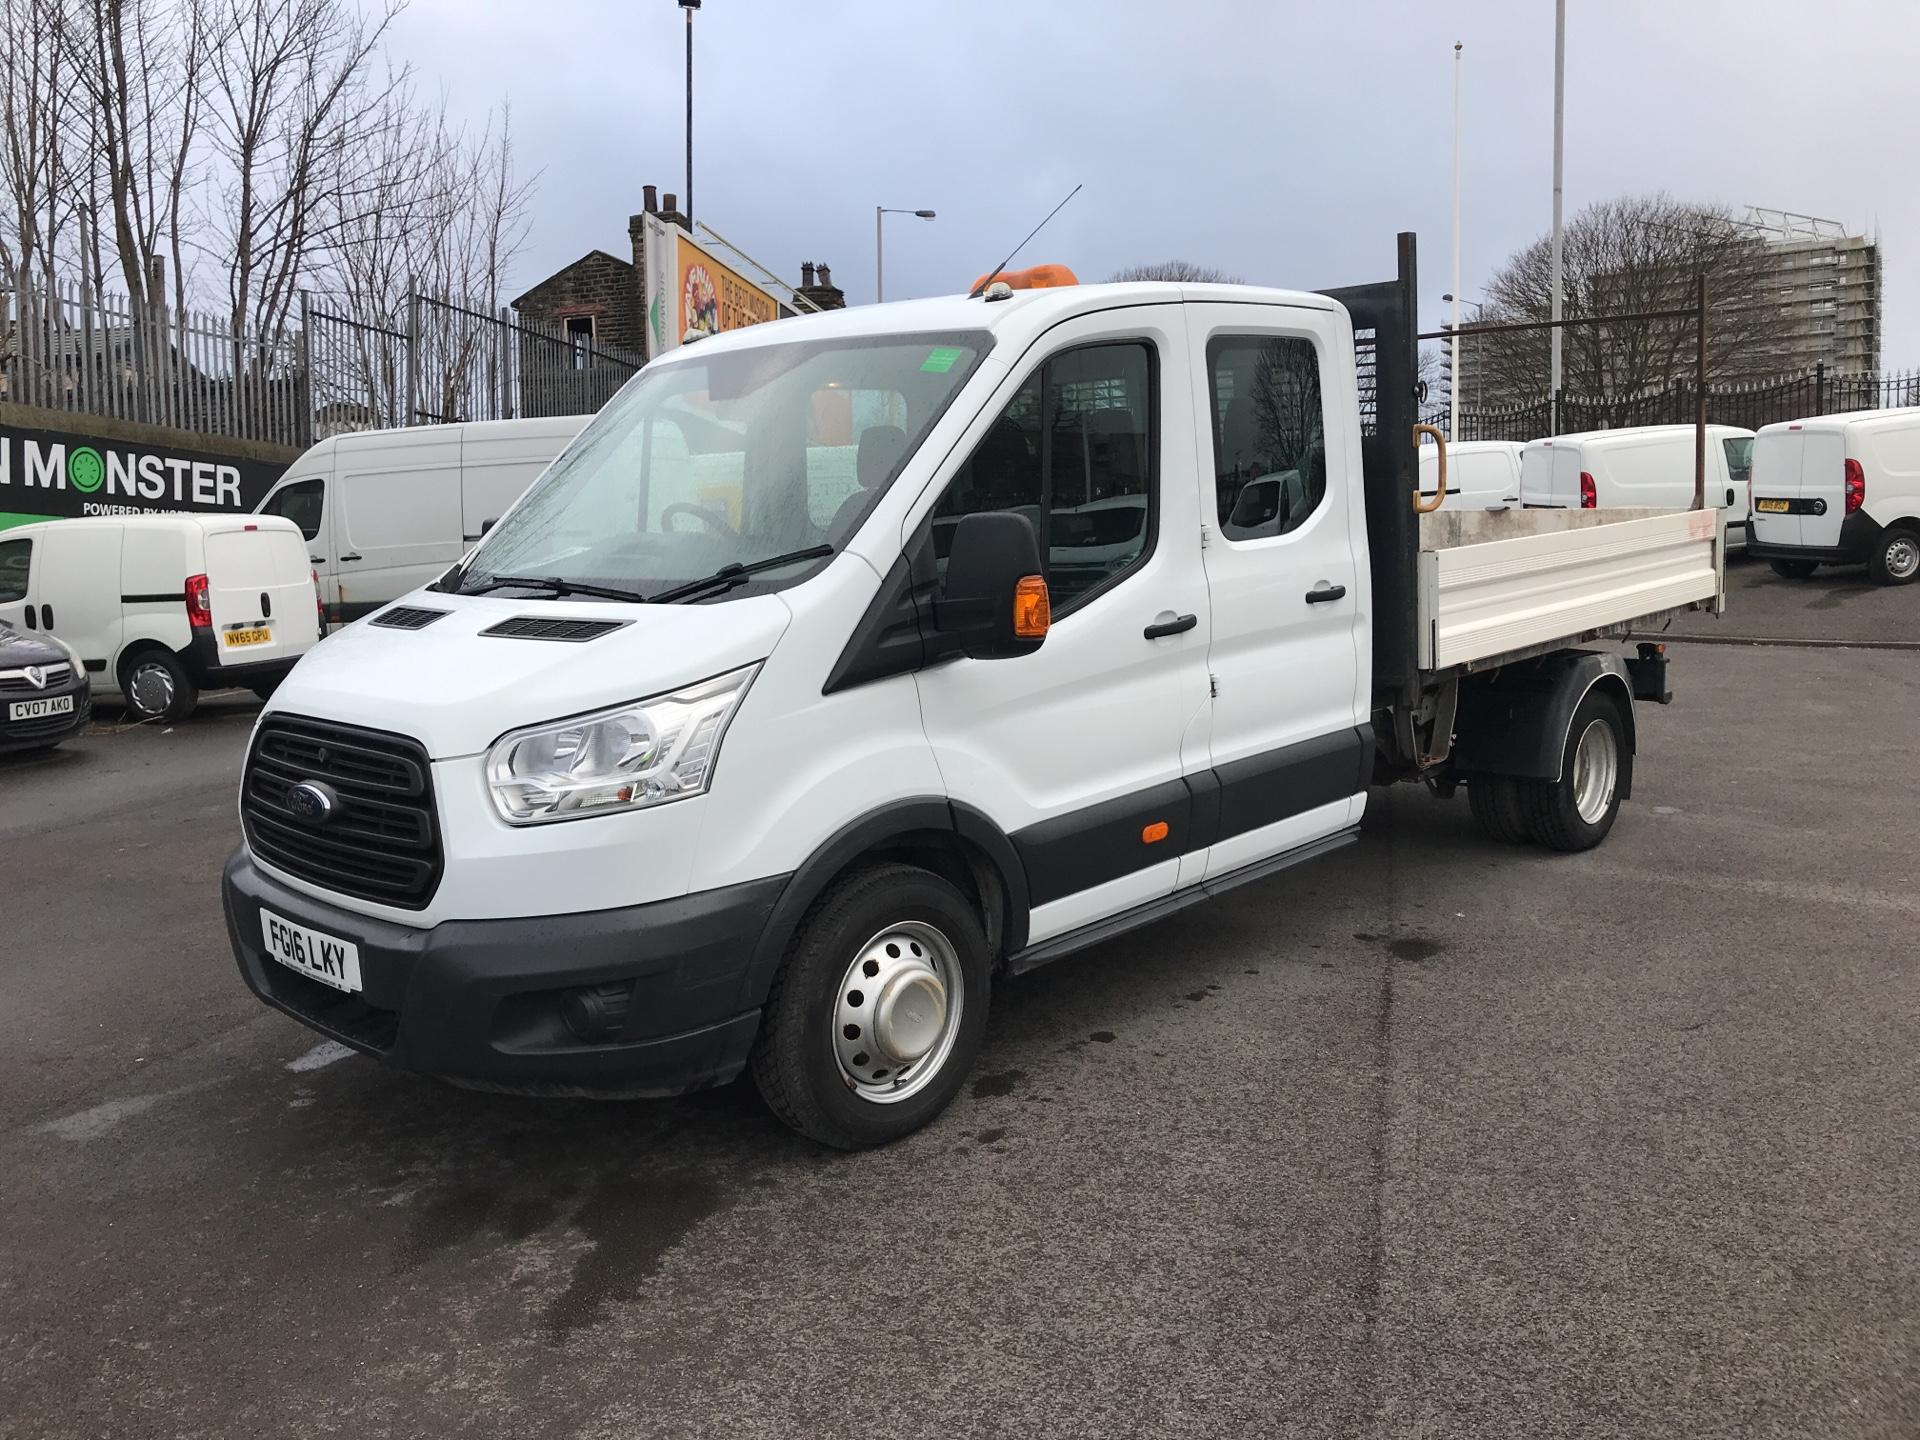 2016 Ford Transit 2.2 TDCI LWB DOUBLE CAB TIPPER EURO 5  (FG16LKY) Image 7